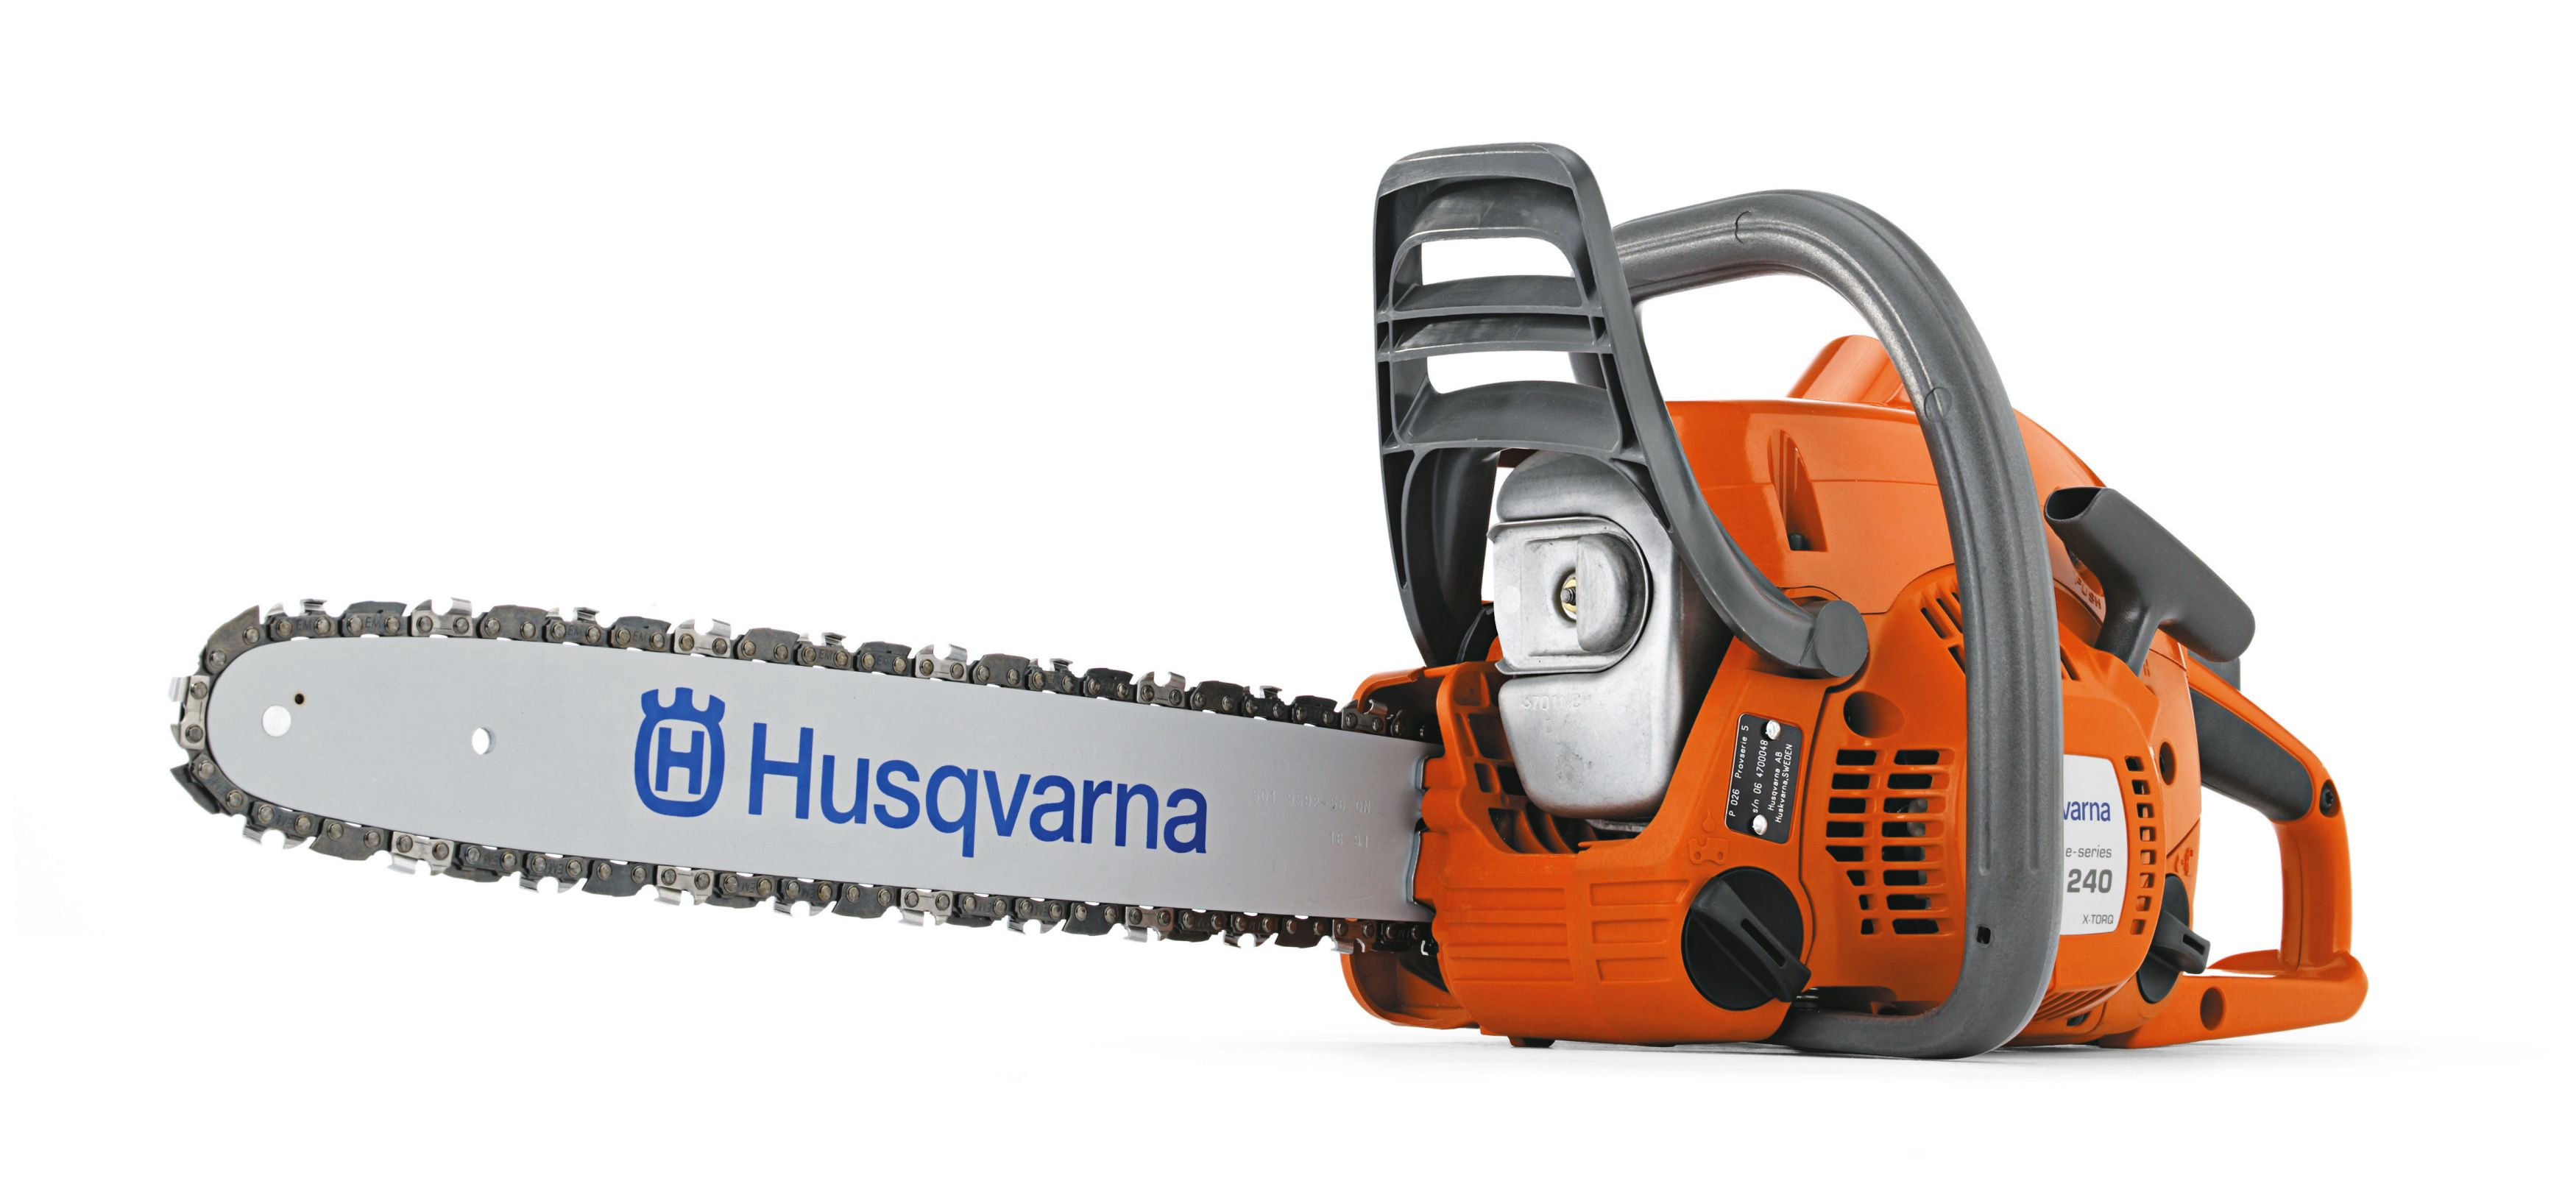 Husqvarna Chainsaw Model 240e Parts And Repair Help